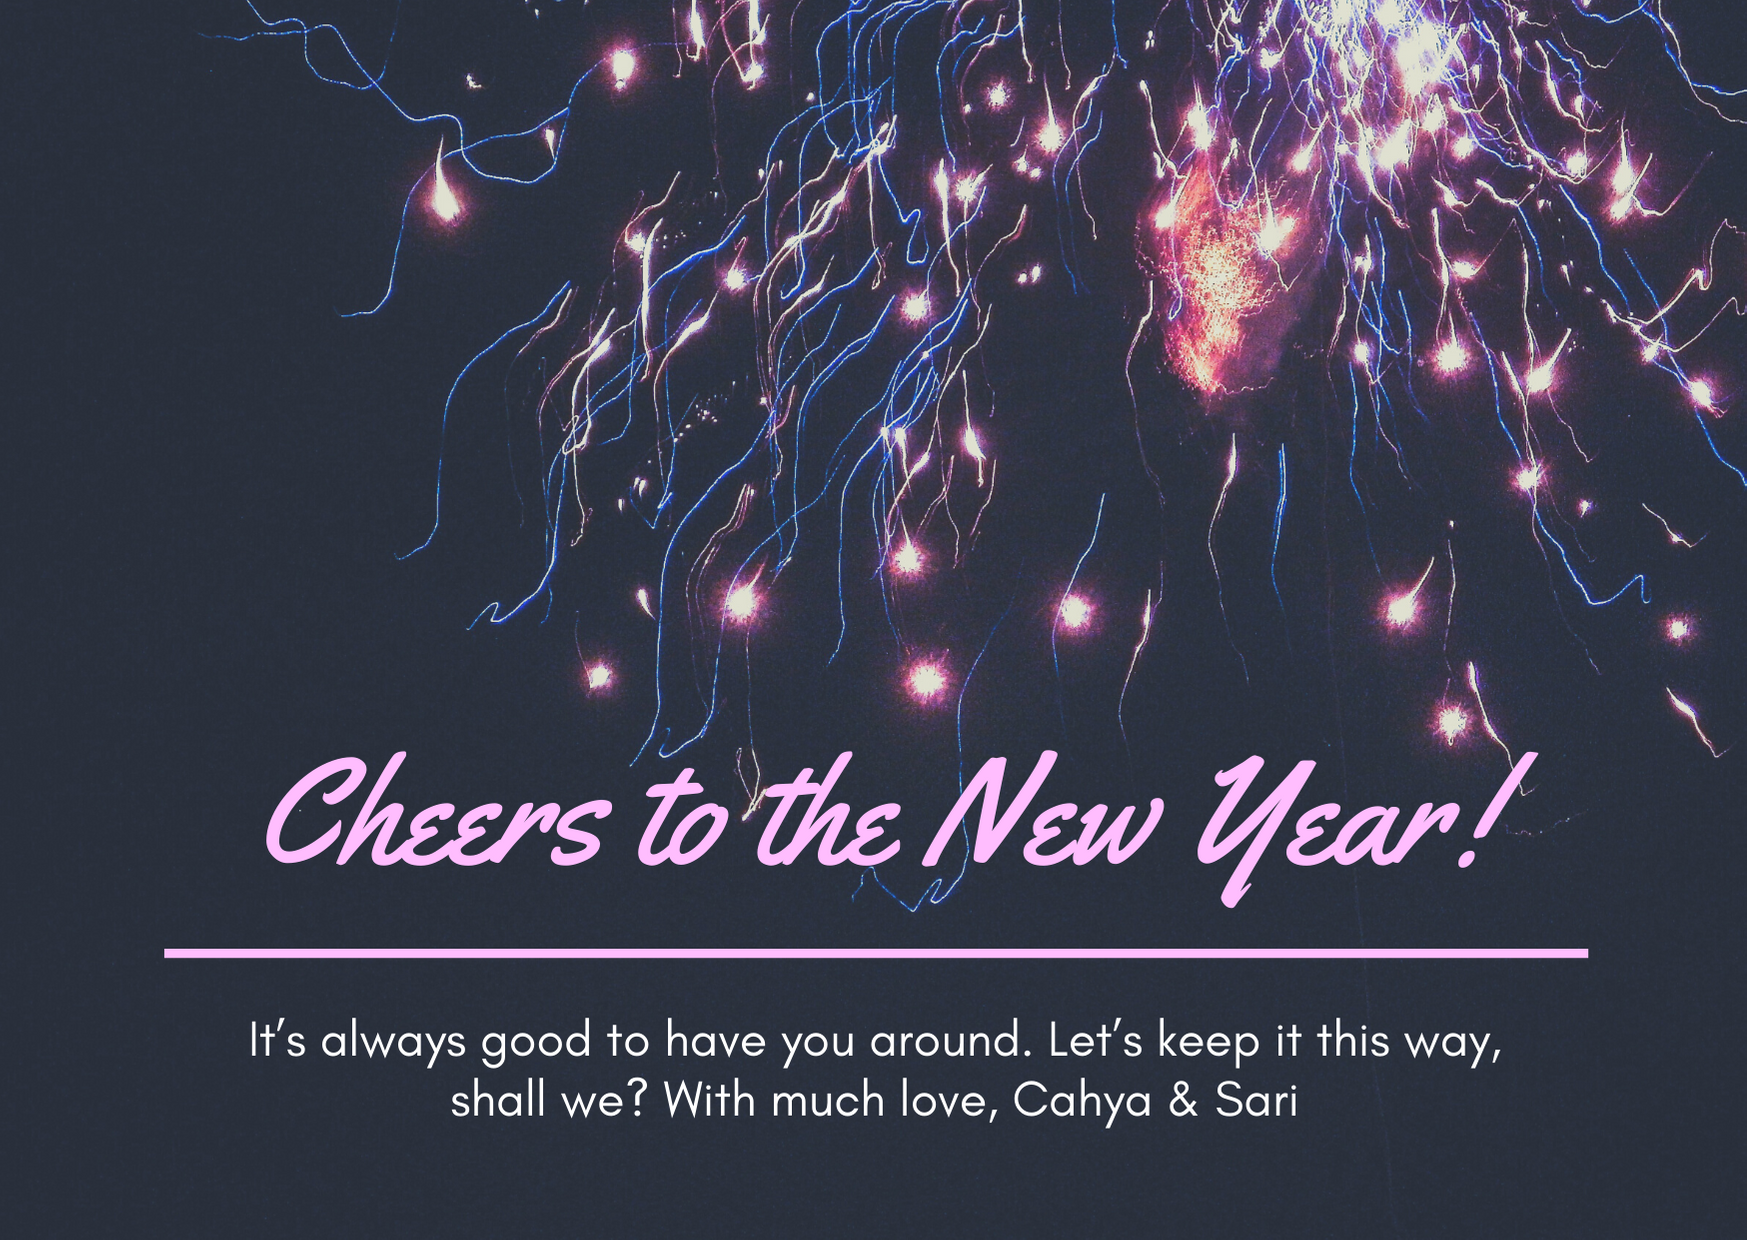 Colorful Fireworks Grid Photo New Year Card